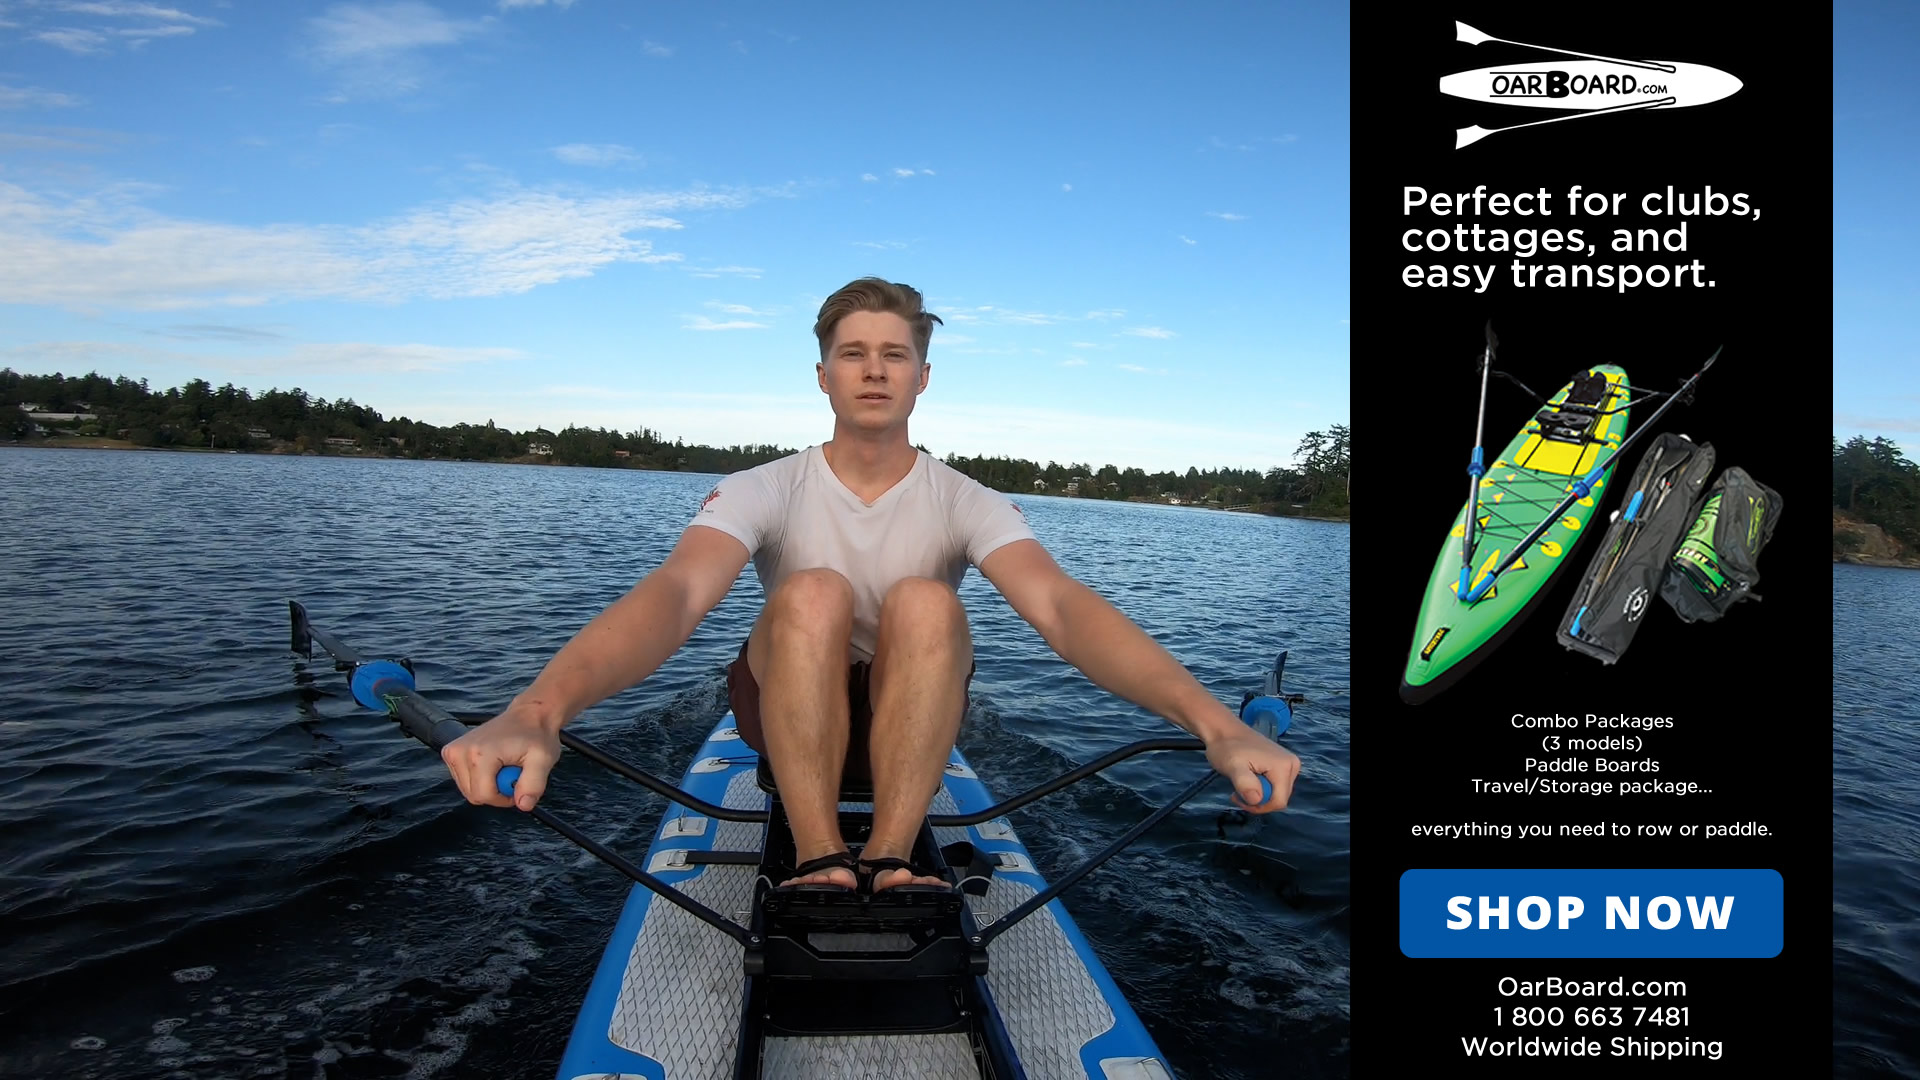 Oar-Board-Stand-Up-Paddle-Board-Rowing-News-2021-1920